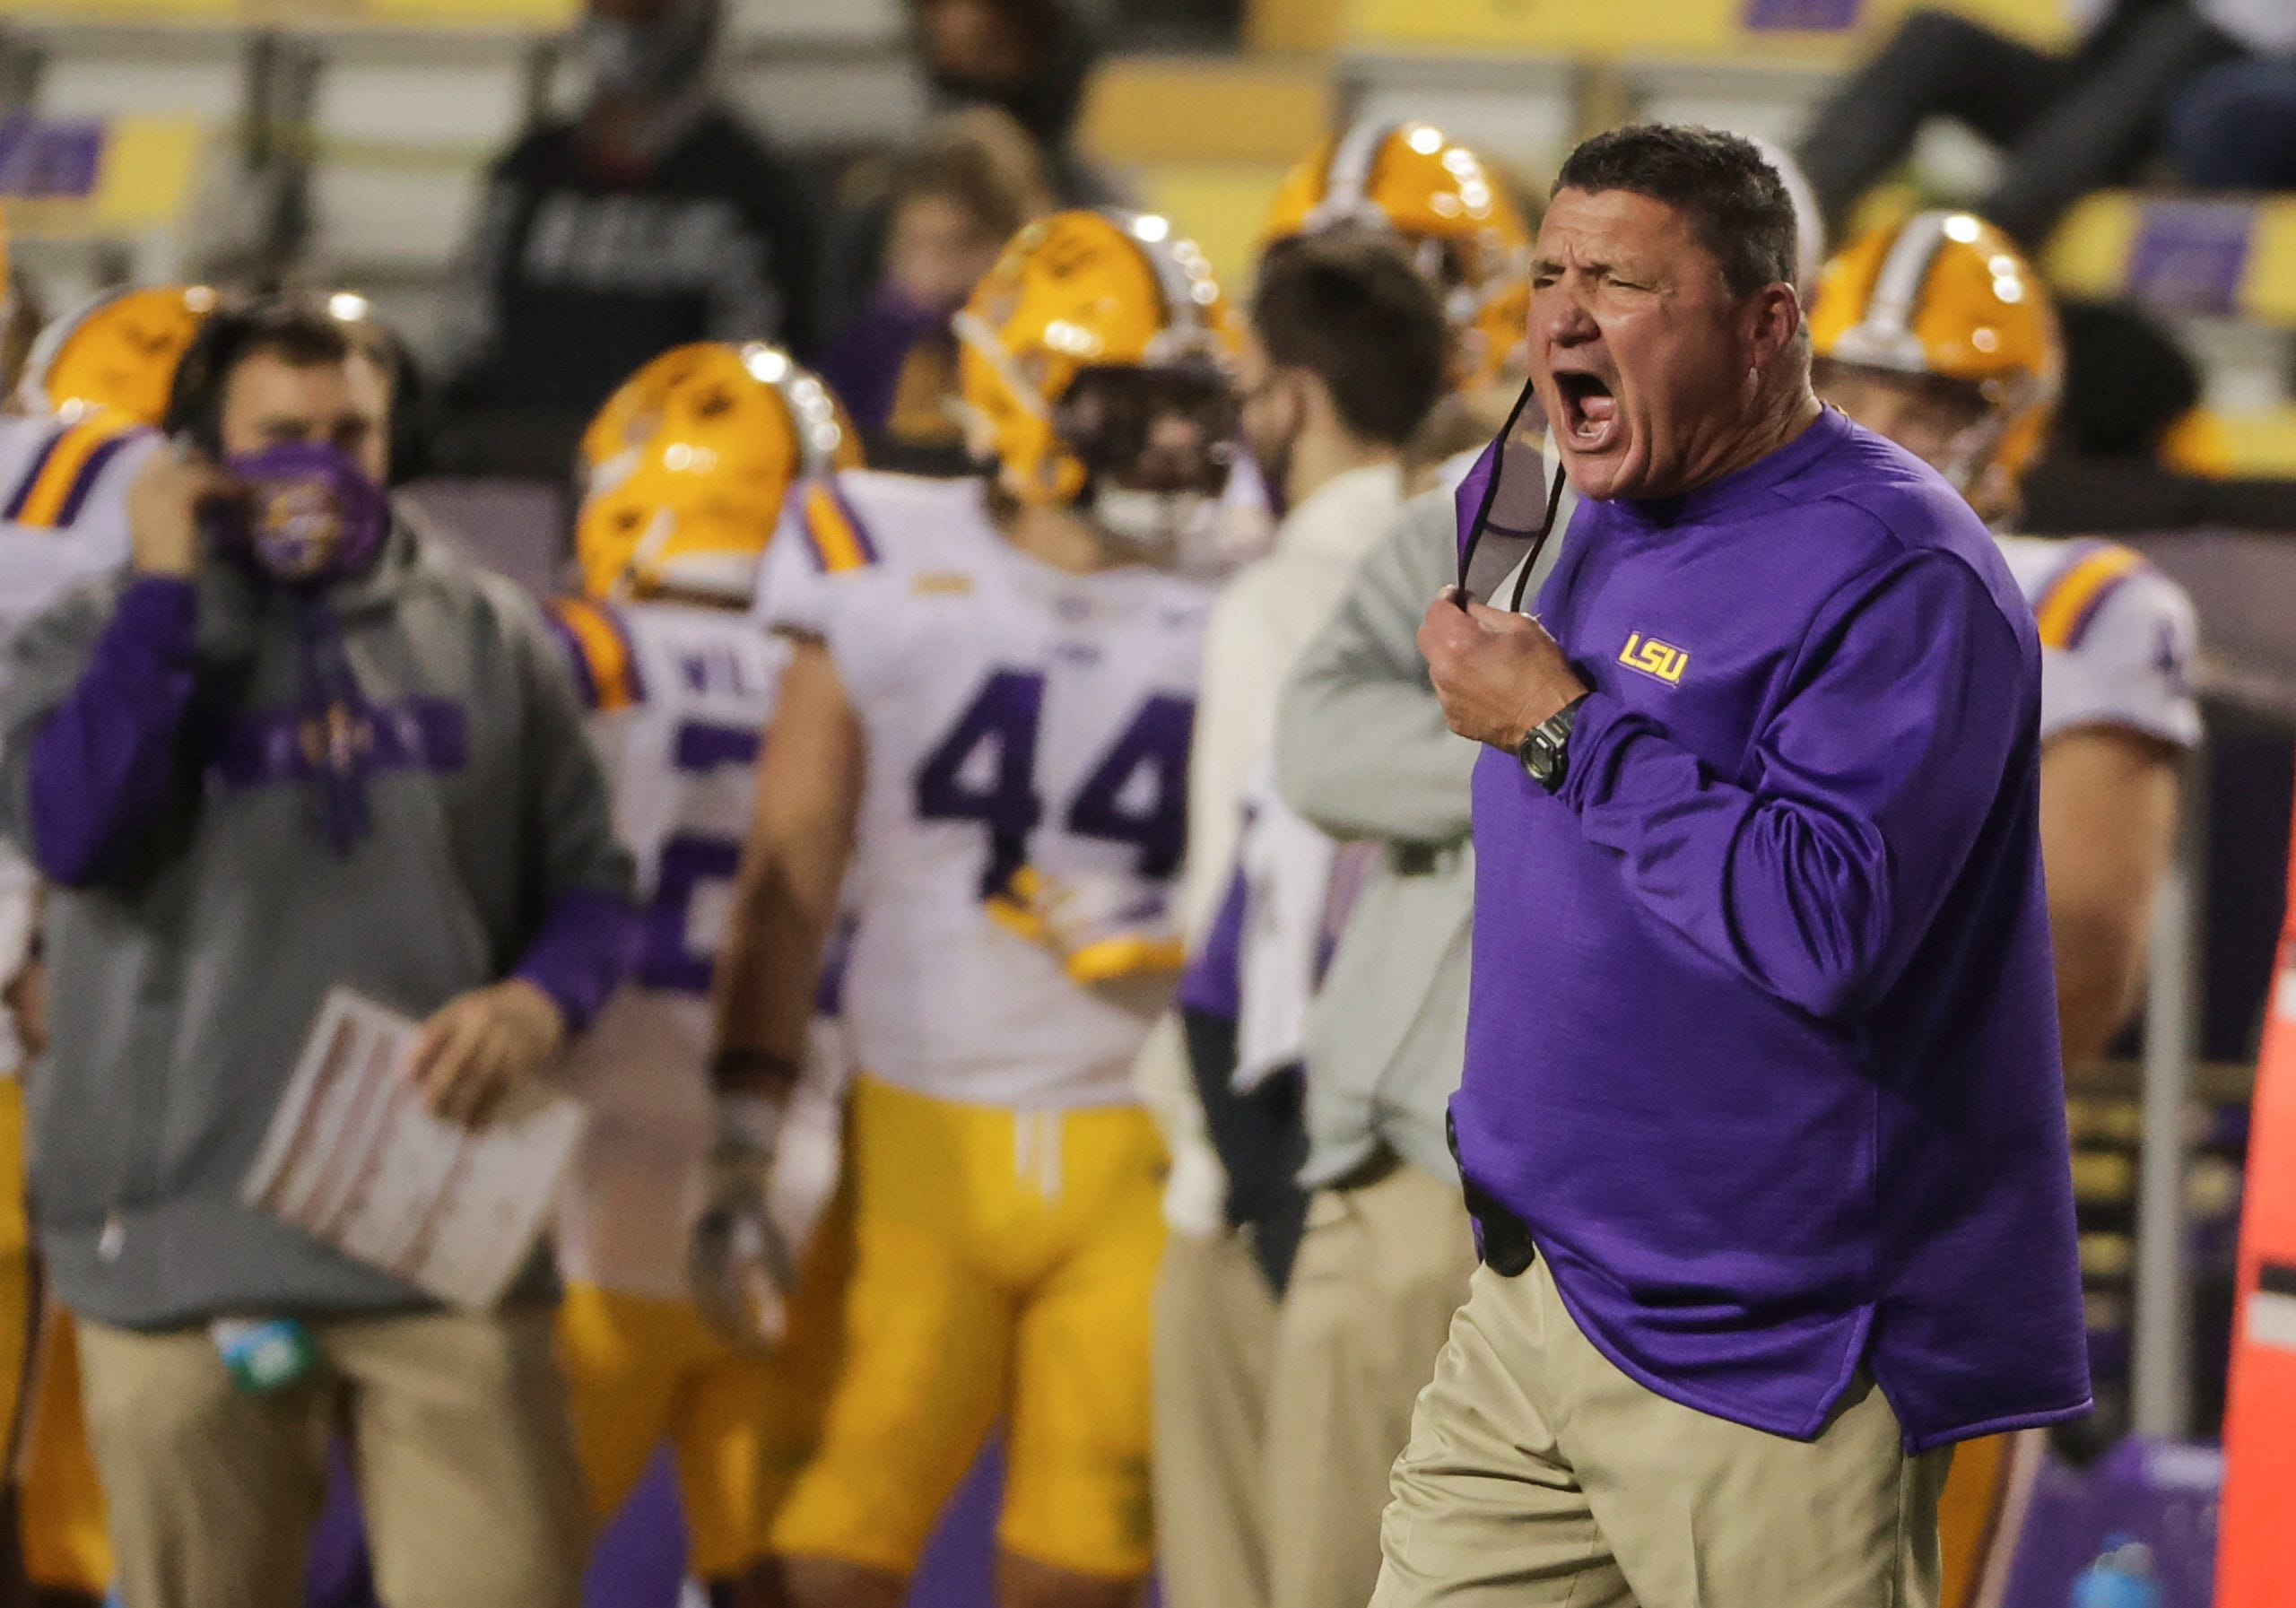 Opinion: LSU's national championship starting to feel like a distant memory as embarrassing losses mount